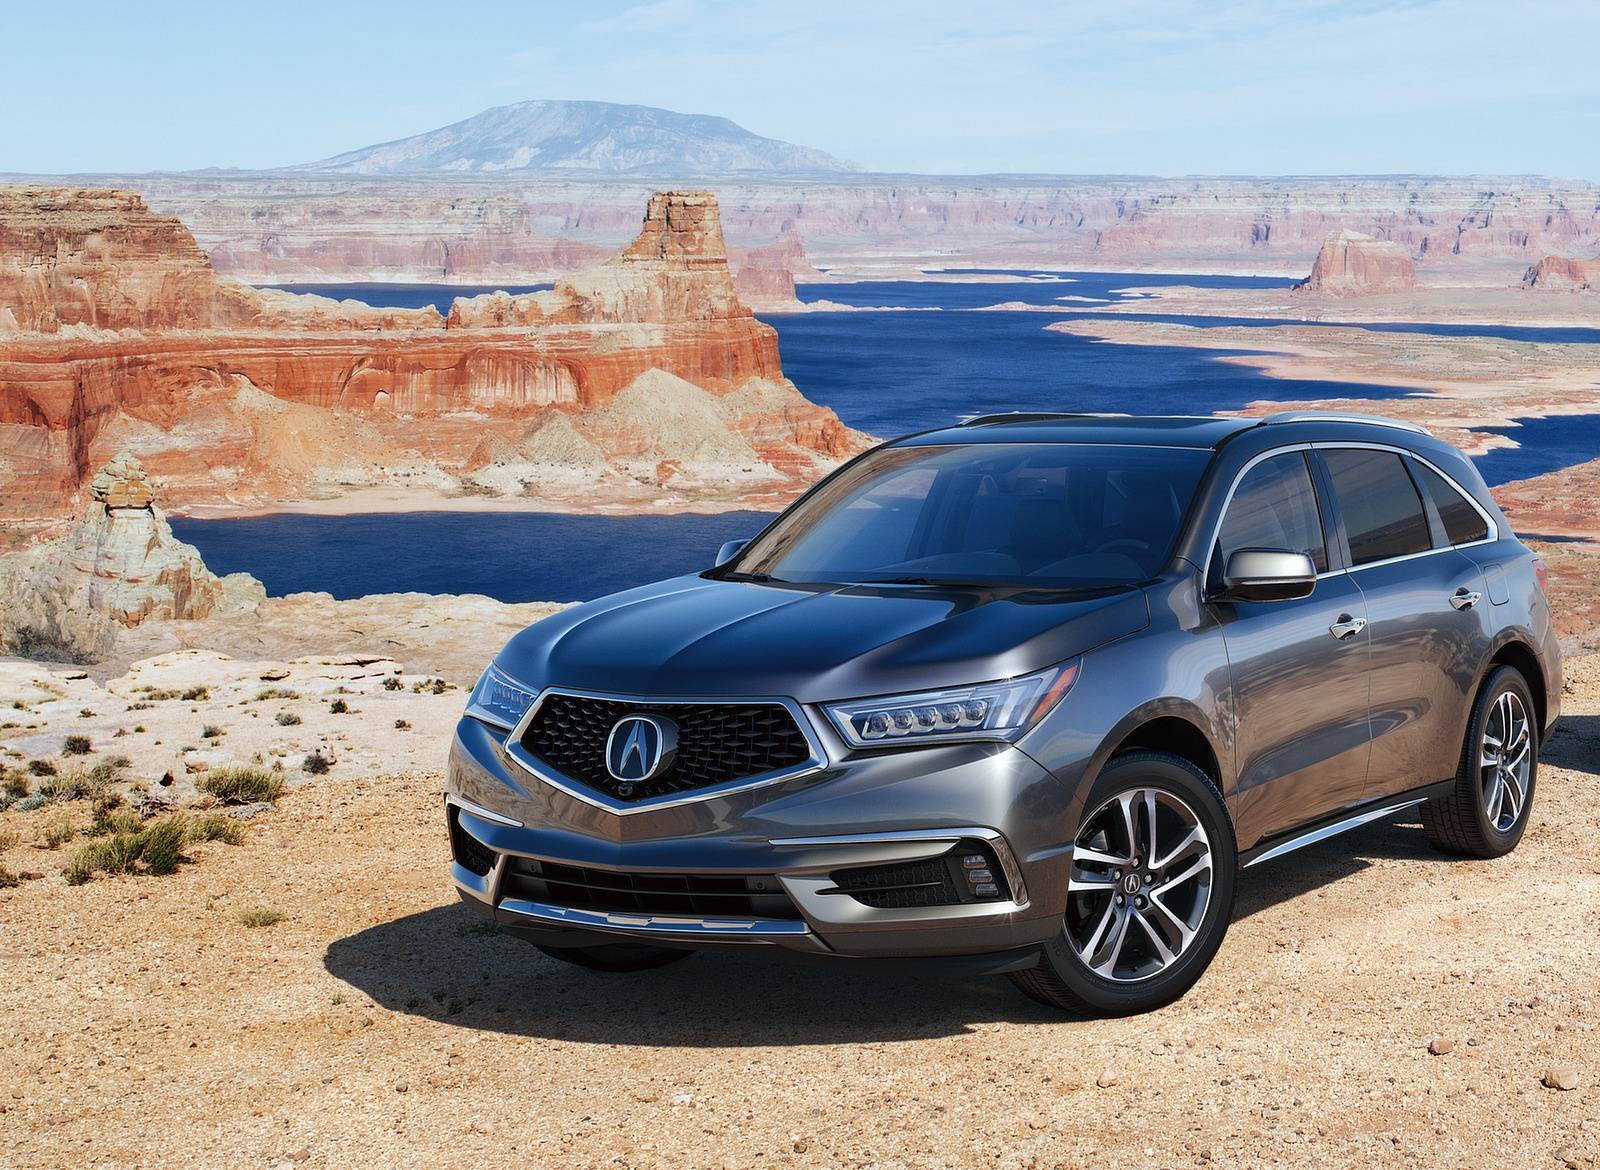 2018 Acura MDX Wallpapers (6)